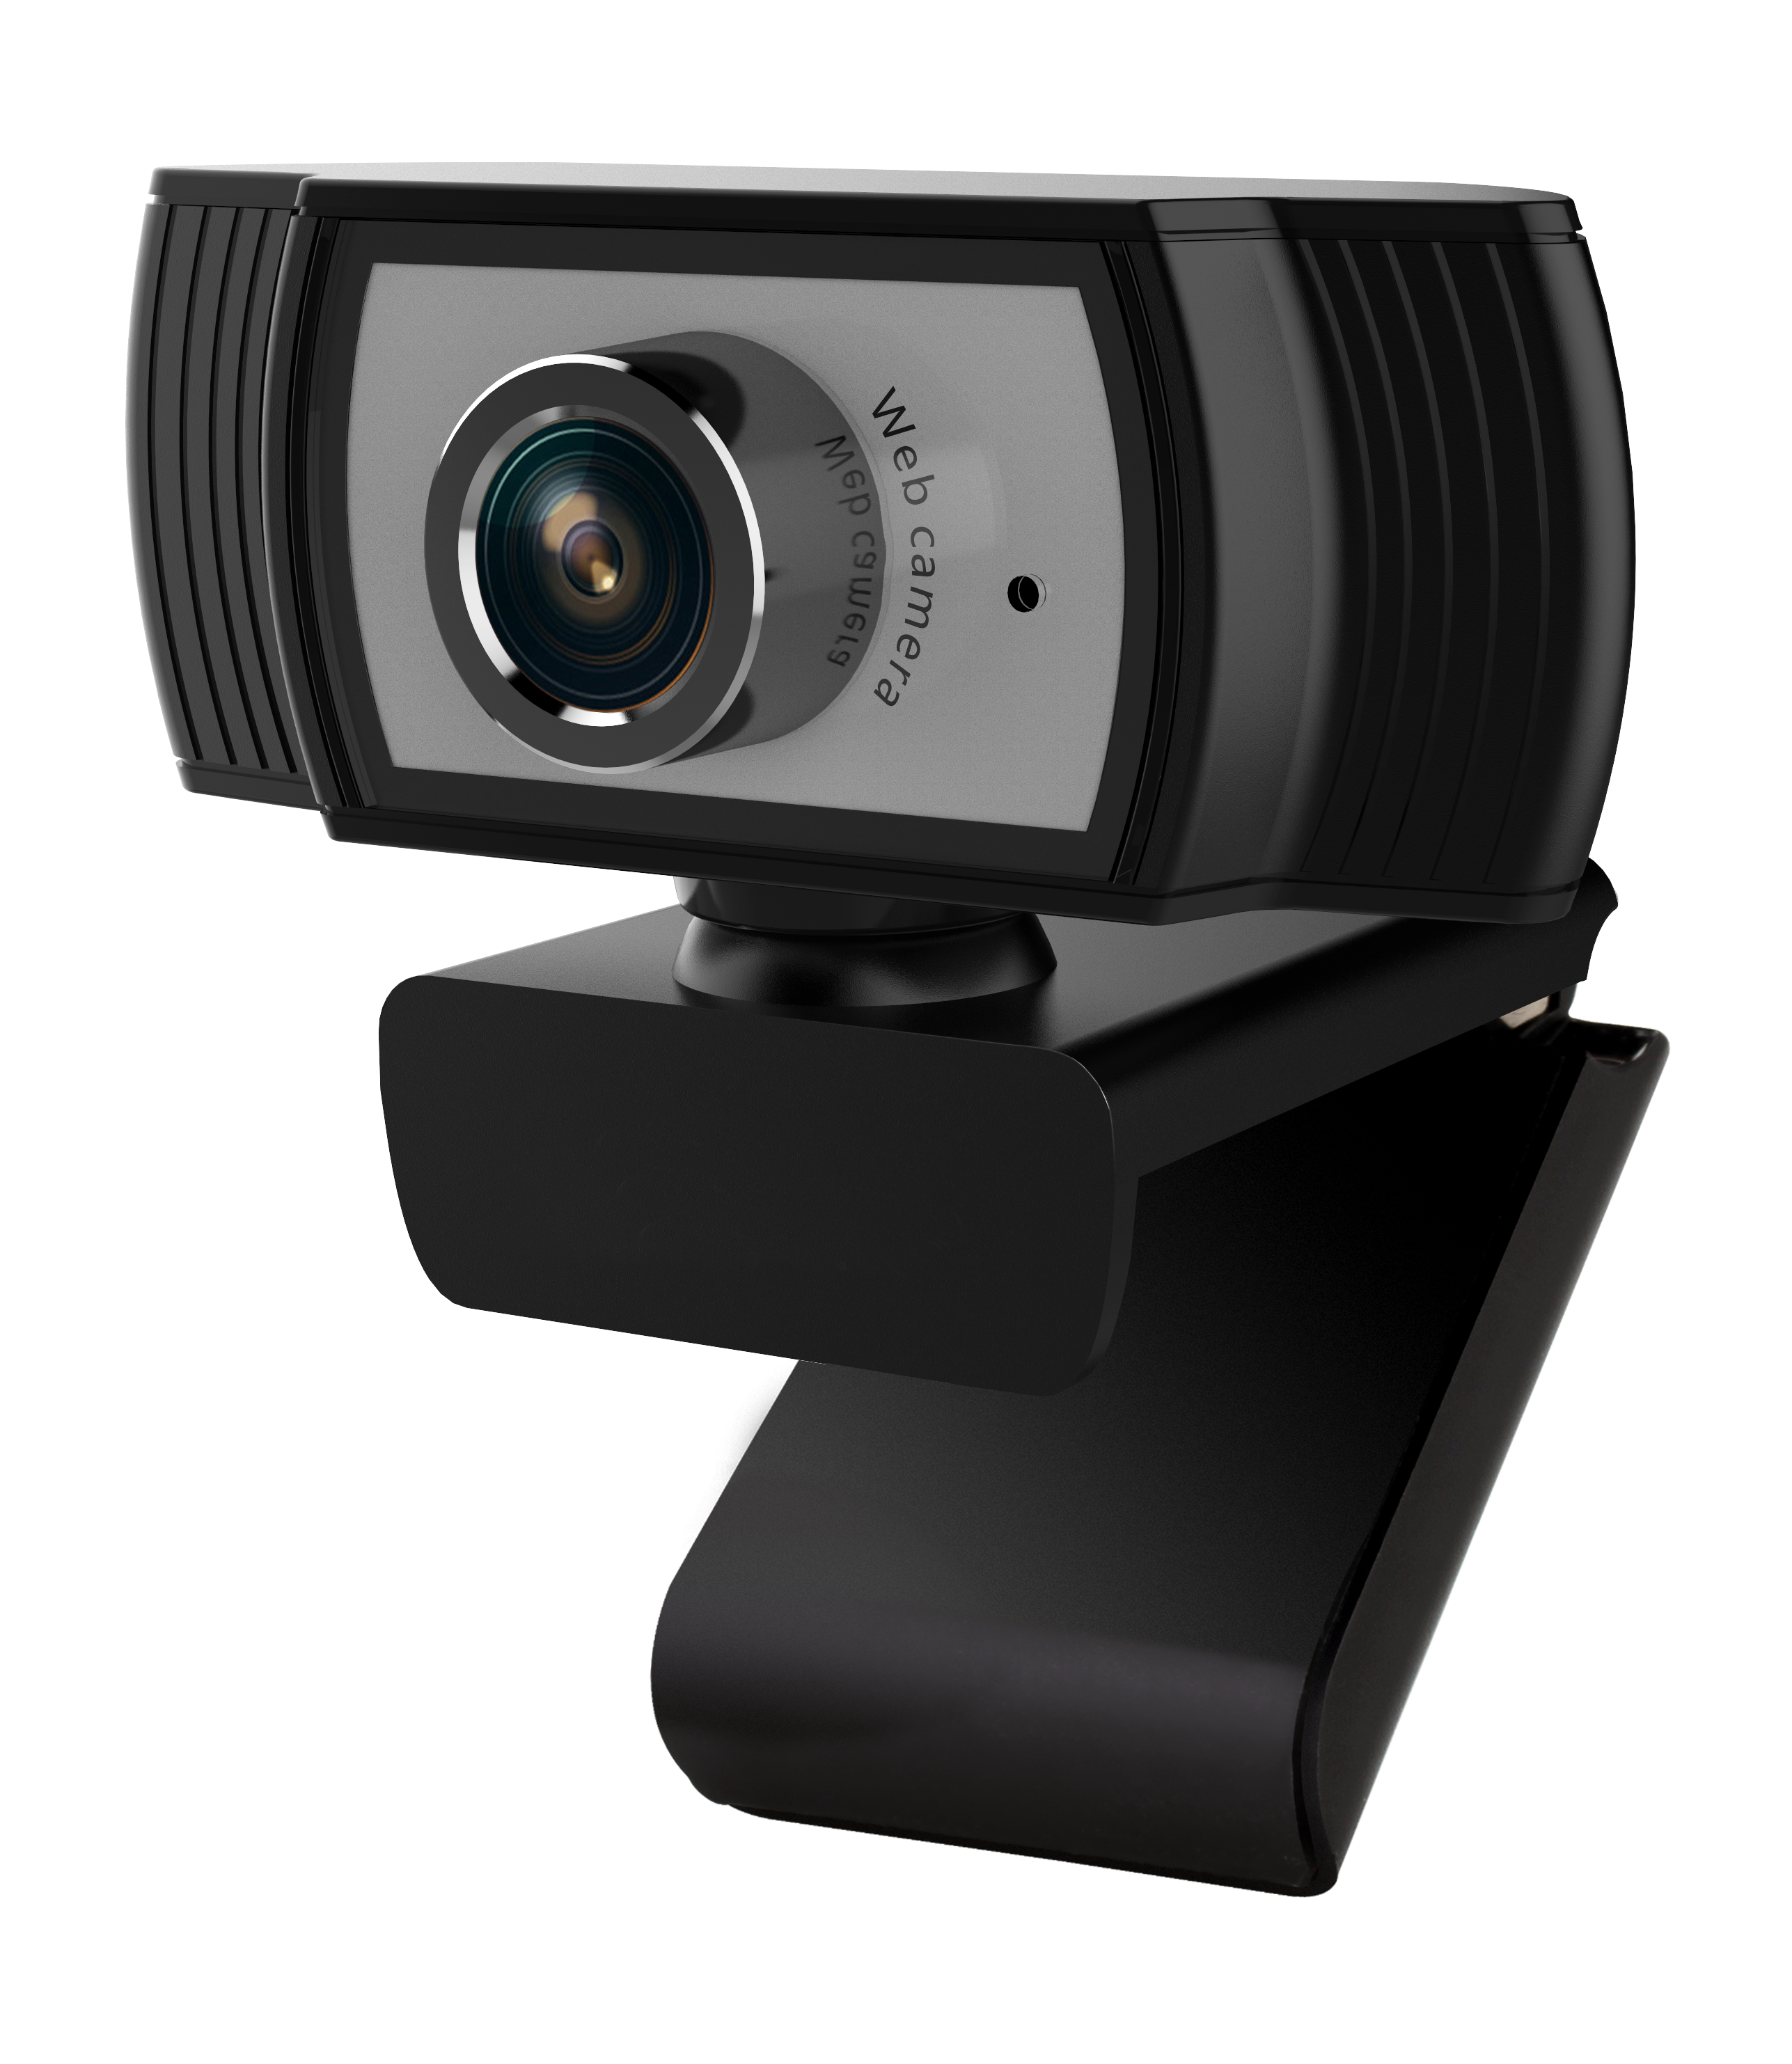 HD 1080P Webcam Lightweight Web Camera Webcam Built-in Microphone High Pixel for Computer PC Live Streaming Video Conference